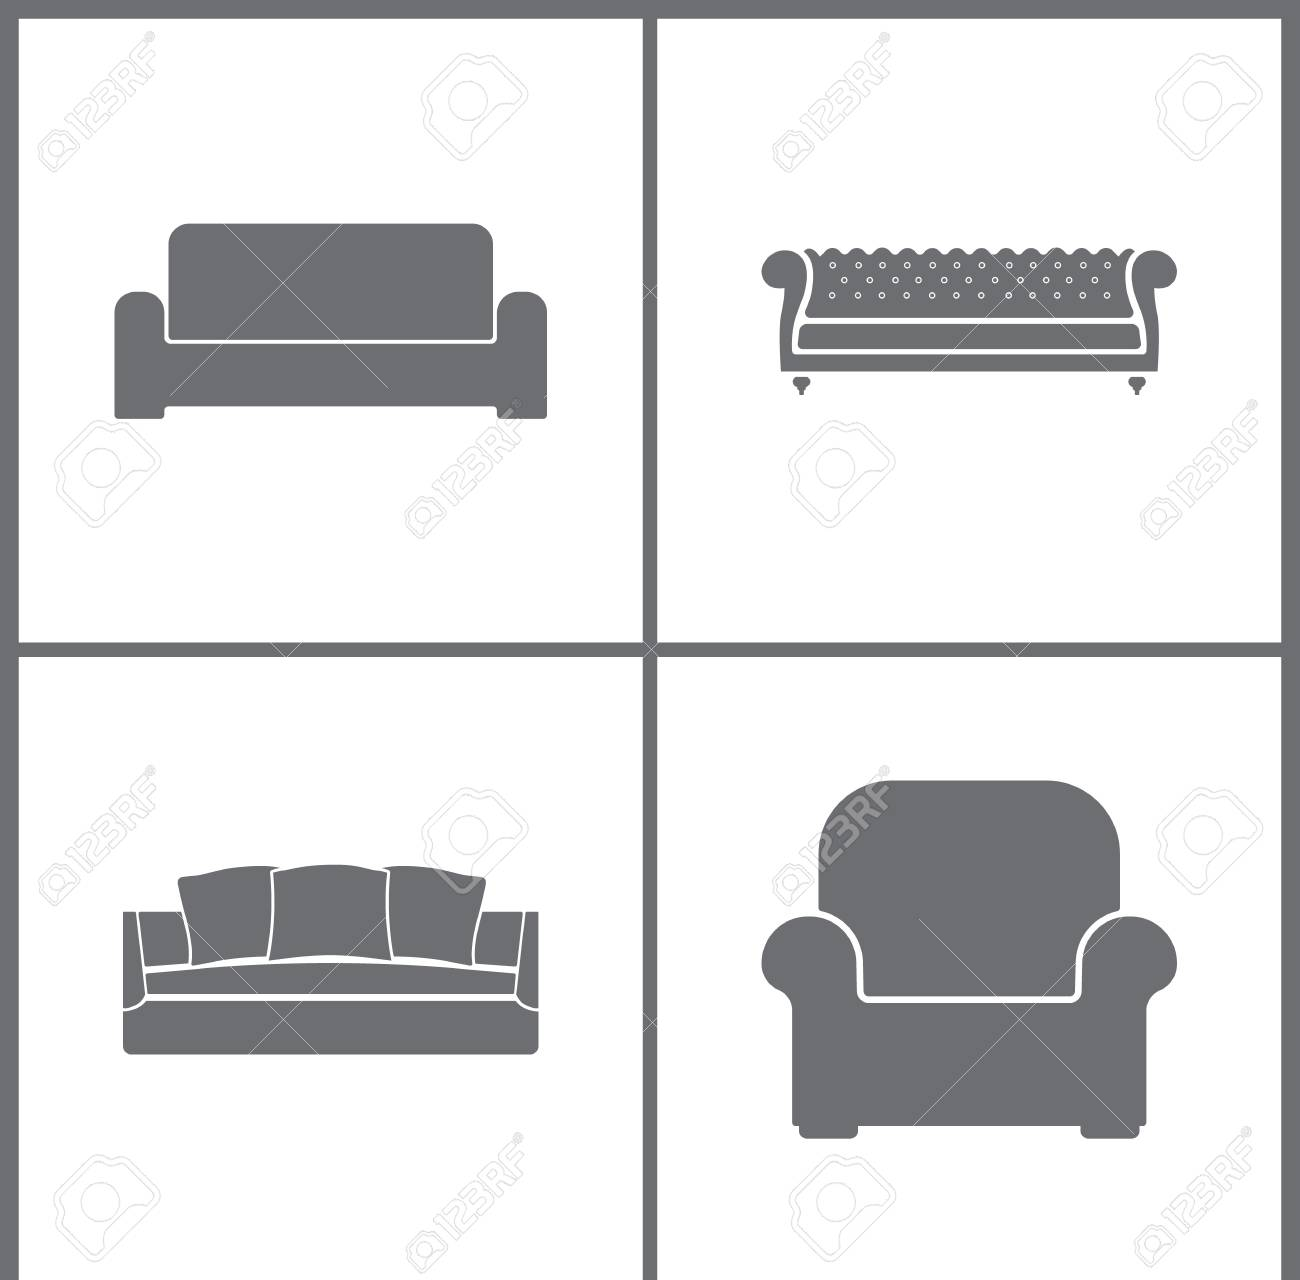 Vector Illustration Set Office Furniture Icons Elements Of Sofa